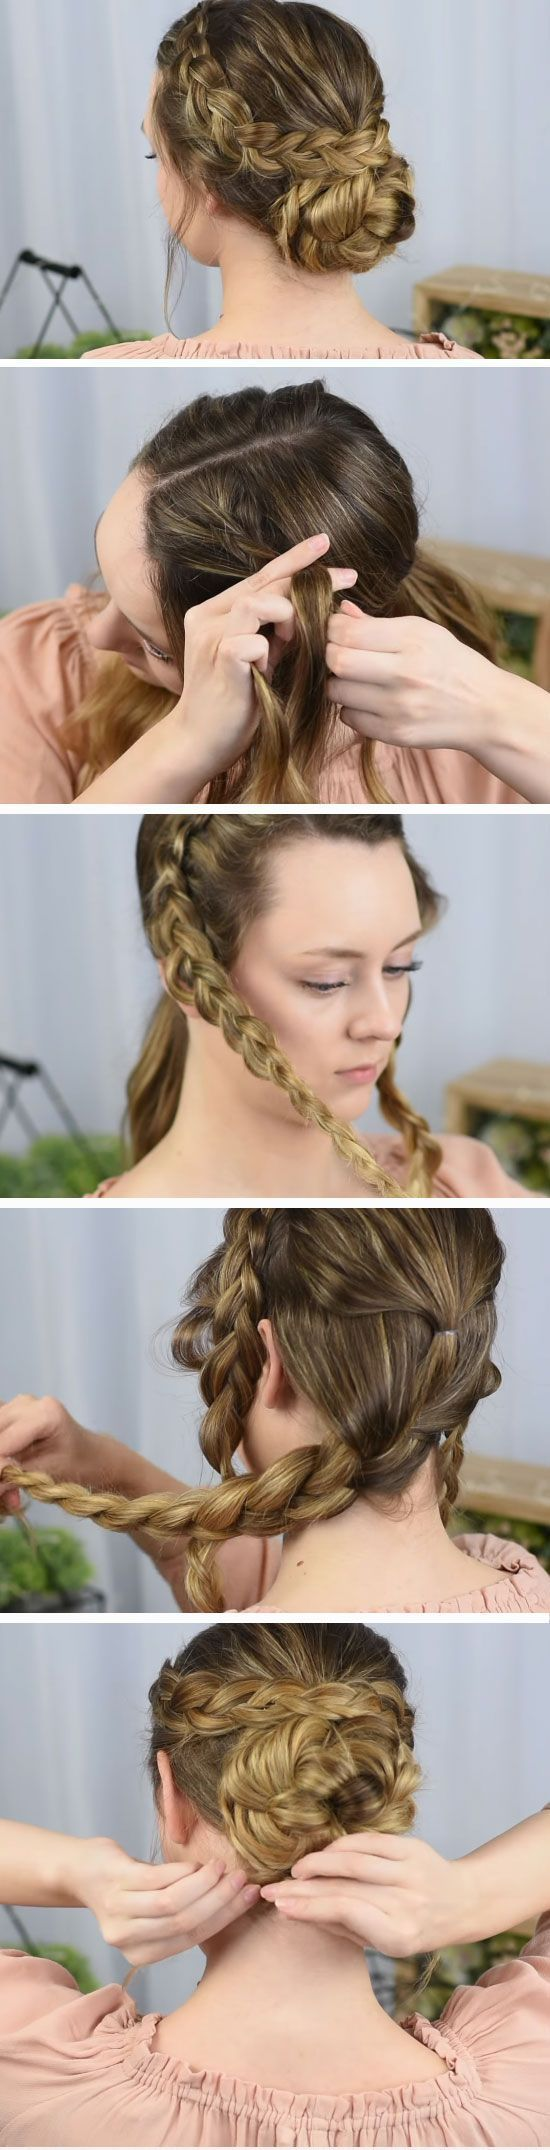 sopretty hairstyles for long hair easy homecoming hairstyles